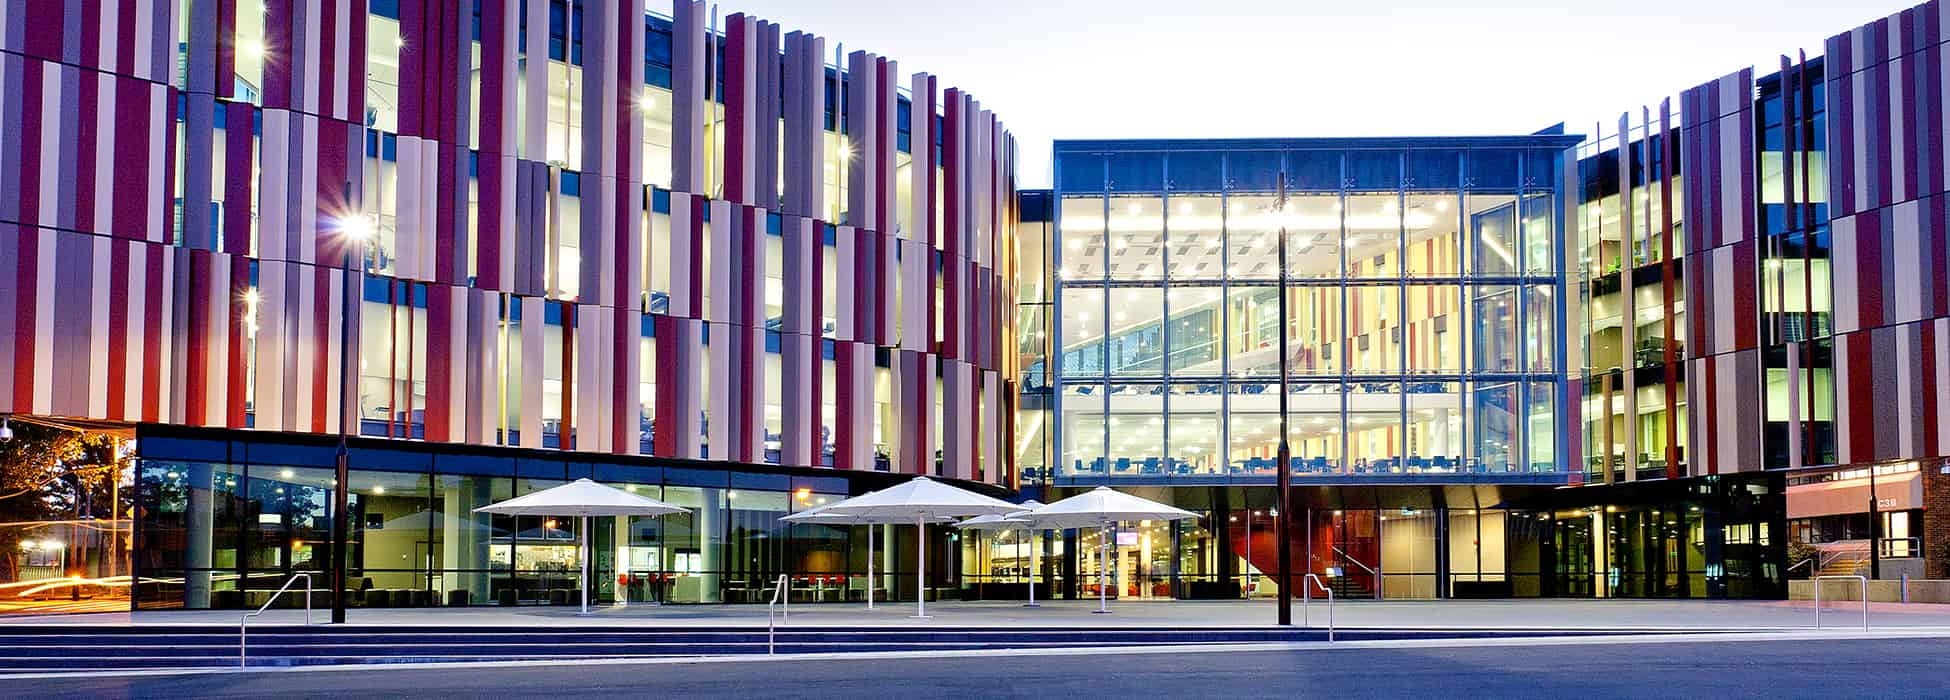 Ausbildung in Australien - - Macquarie University